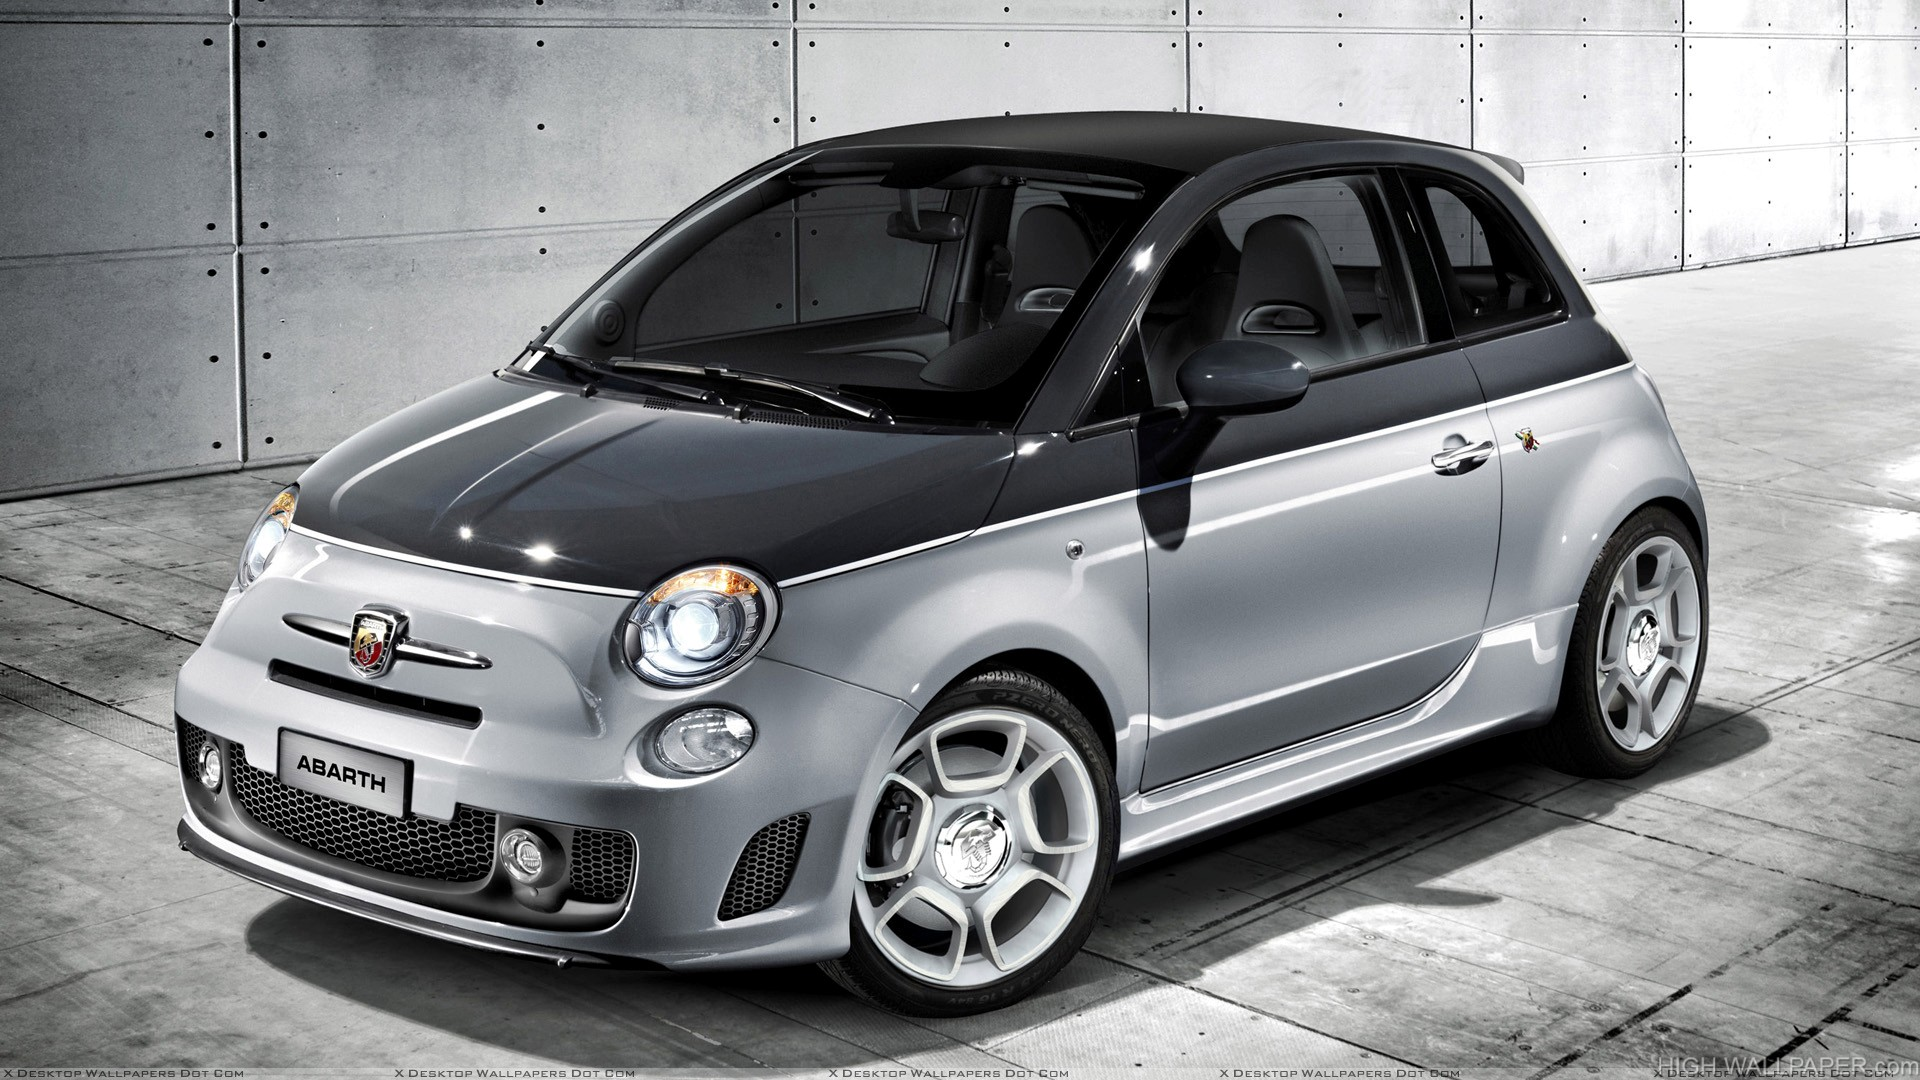 2010 Abarth 500C Side Front Pose In Black N Silver